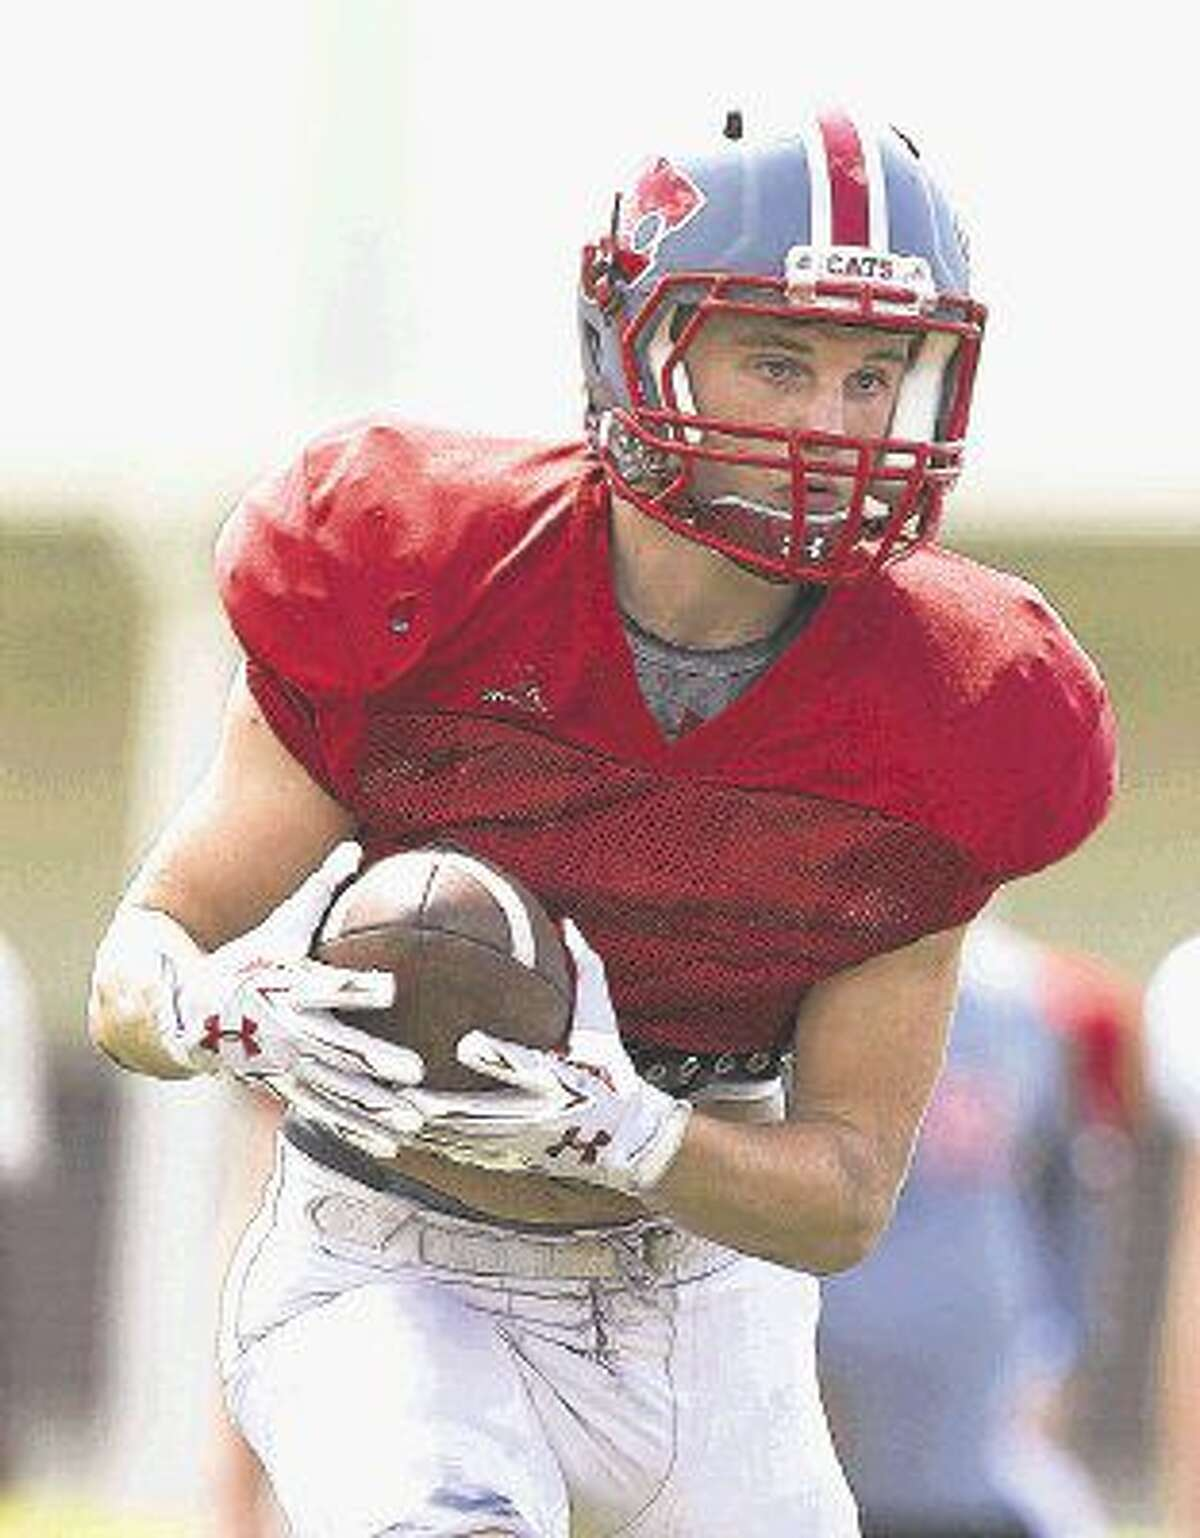 Splendora running back Evan Nichols has run for 353 yards on just 32 carries, scoring four times already this season.